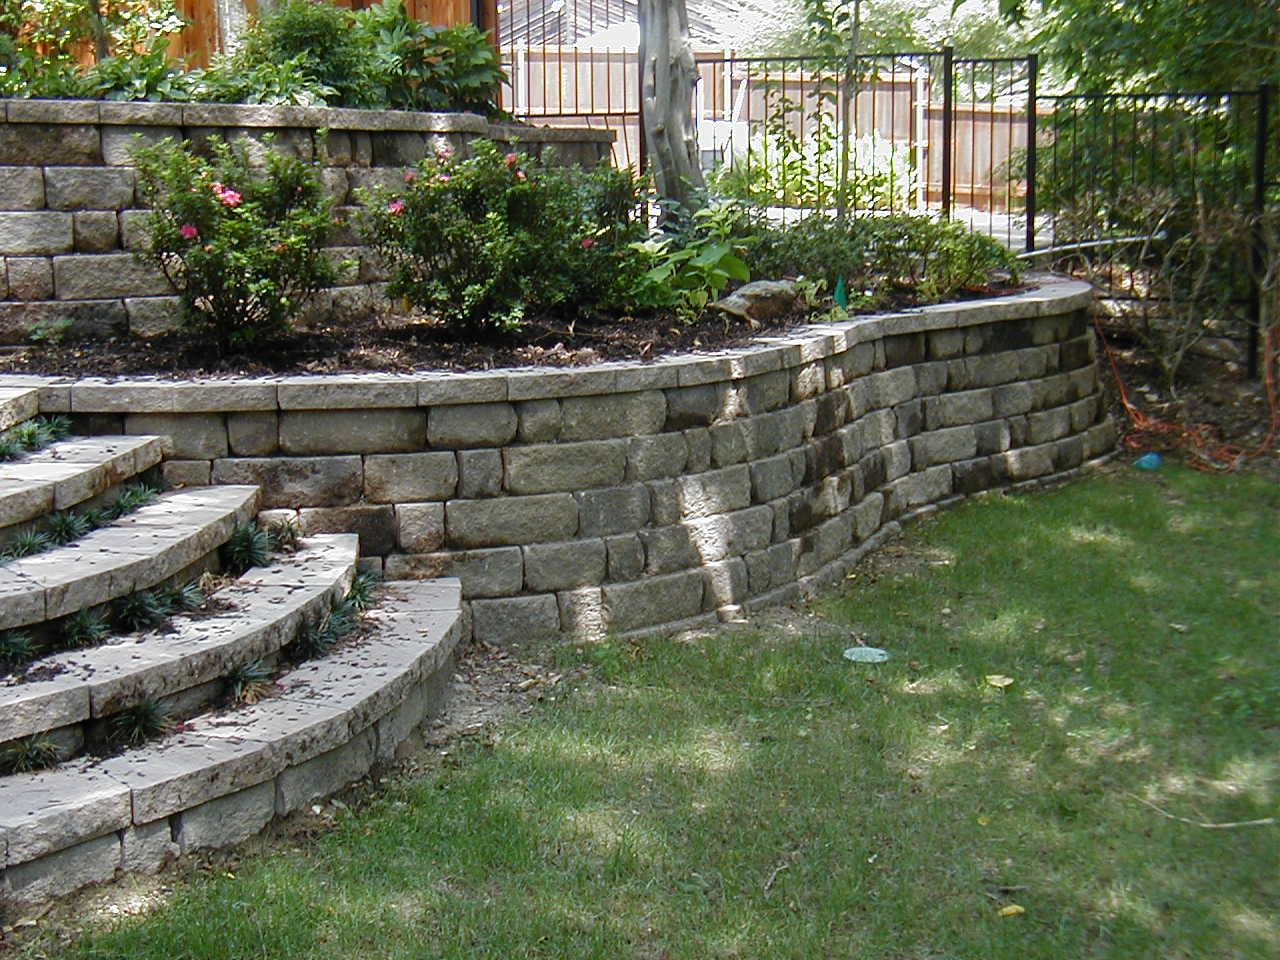 Landscaping With Walls : Using retaining walls and french drains for landscaping in midwest